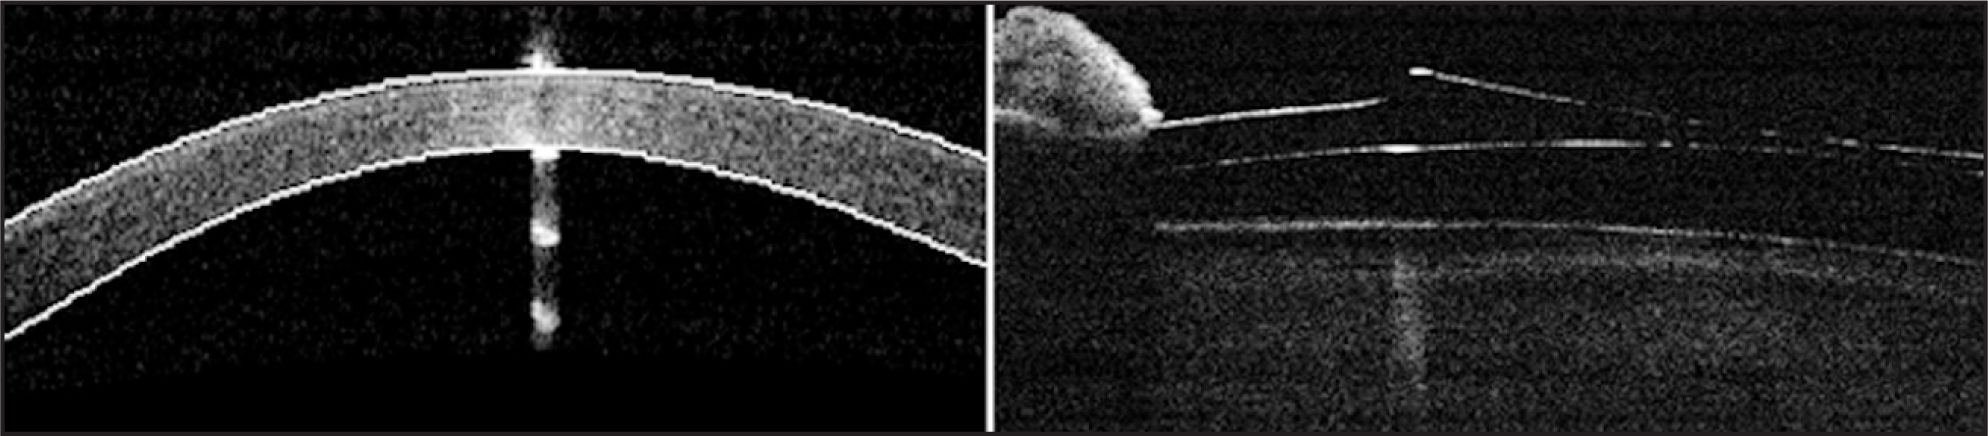 Anterior Segment Optical Coherence Tomography (RTVue, Model RT100; Optovue Inc., Fremont, CA) Showing the Corneal Thinning (left) and the Implanted Posterior Chamber Toric Implantable Collamer Lens (Visian ICL; STAAR Surgical, Monrovia, CA) (right).